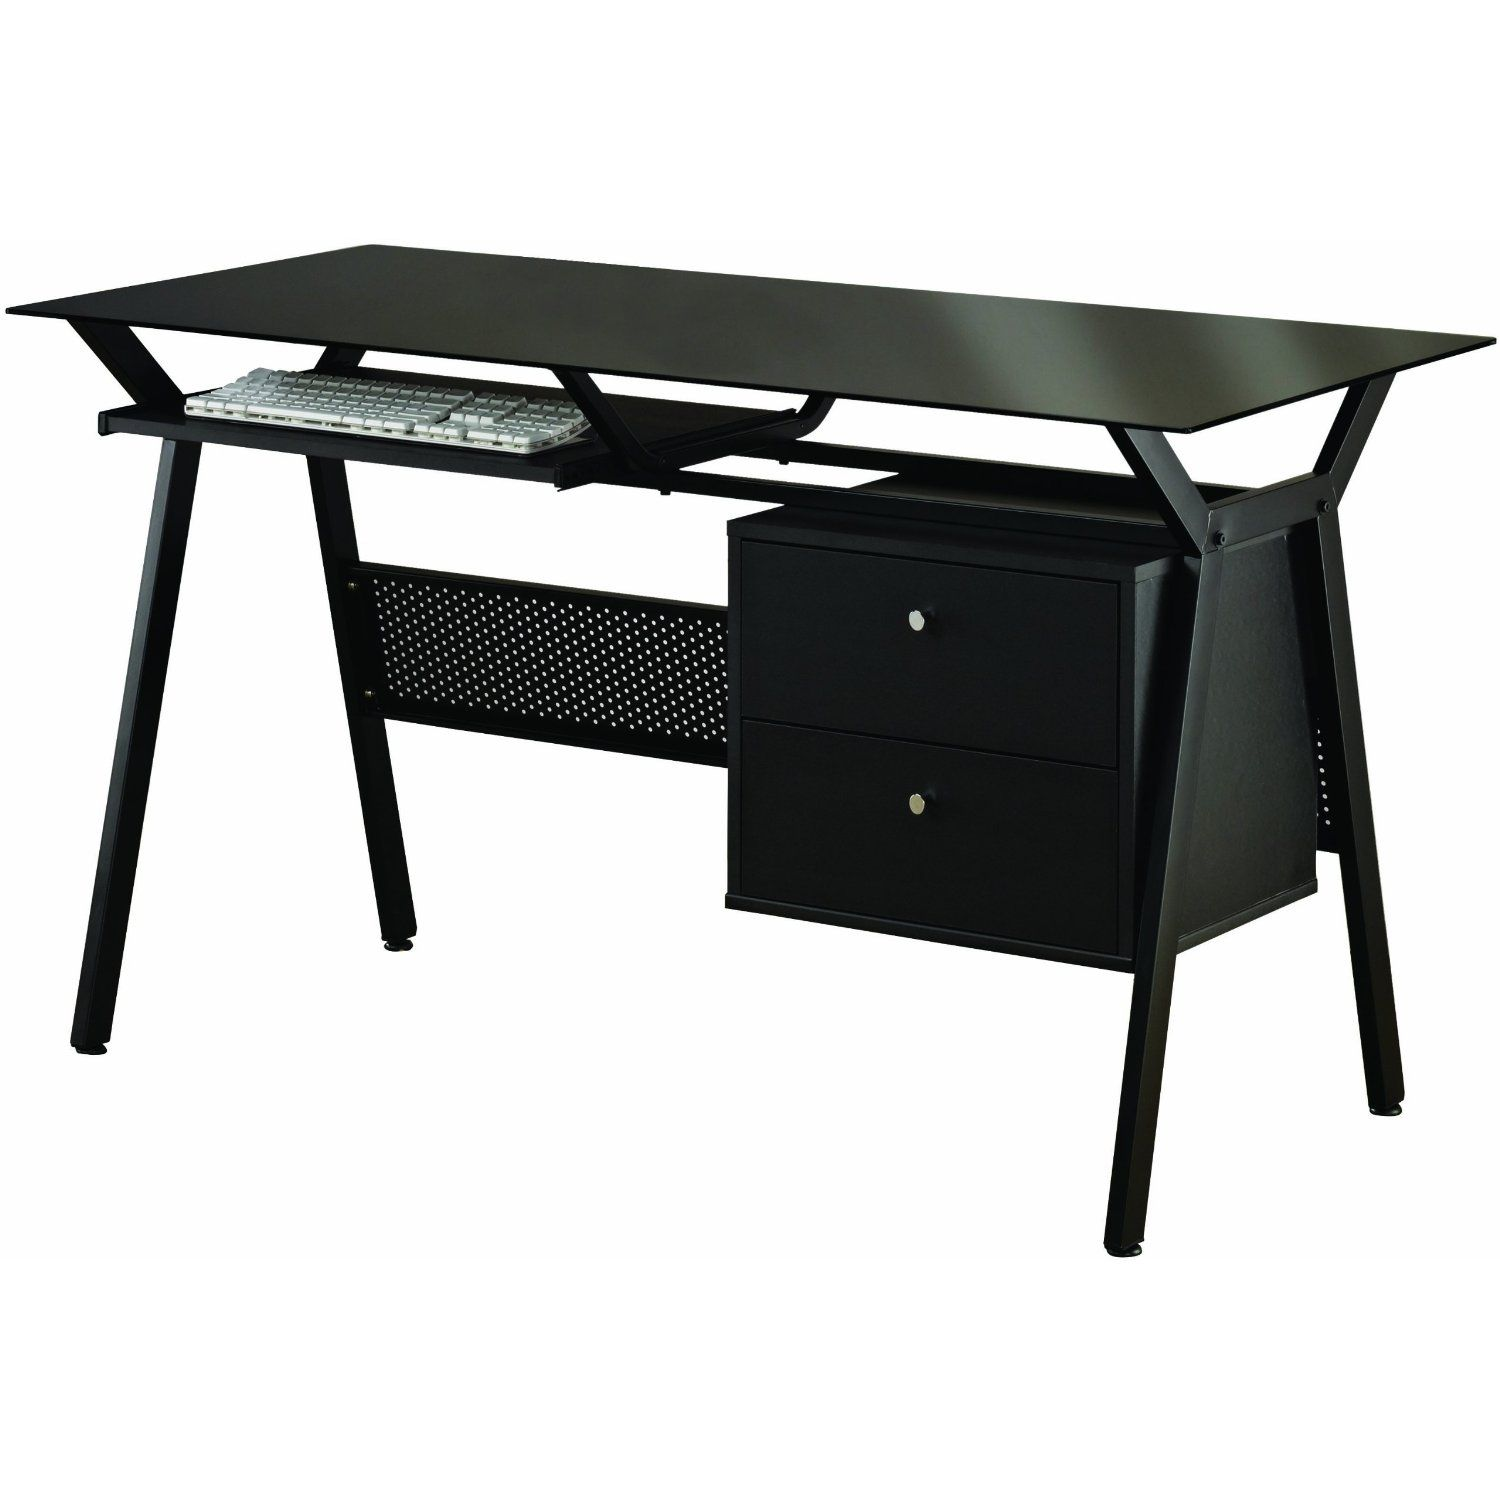 Small Black Desk | ... black computer desk sitemap black desk small black desk small black